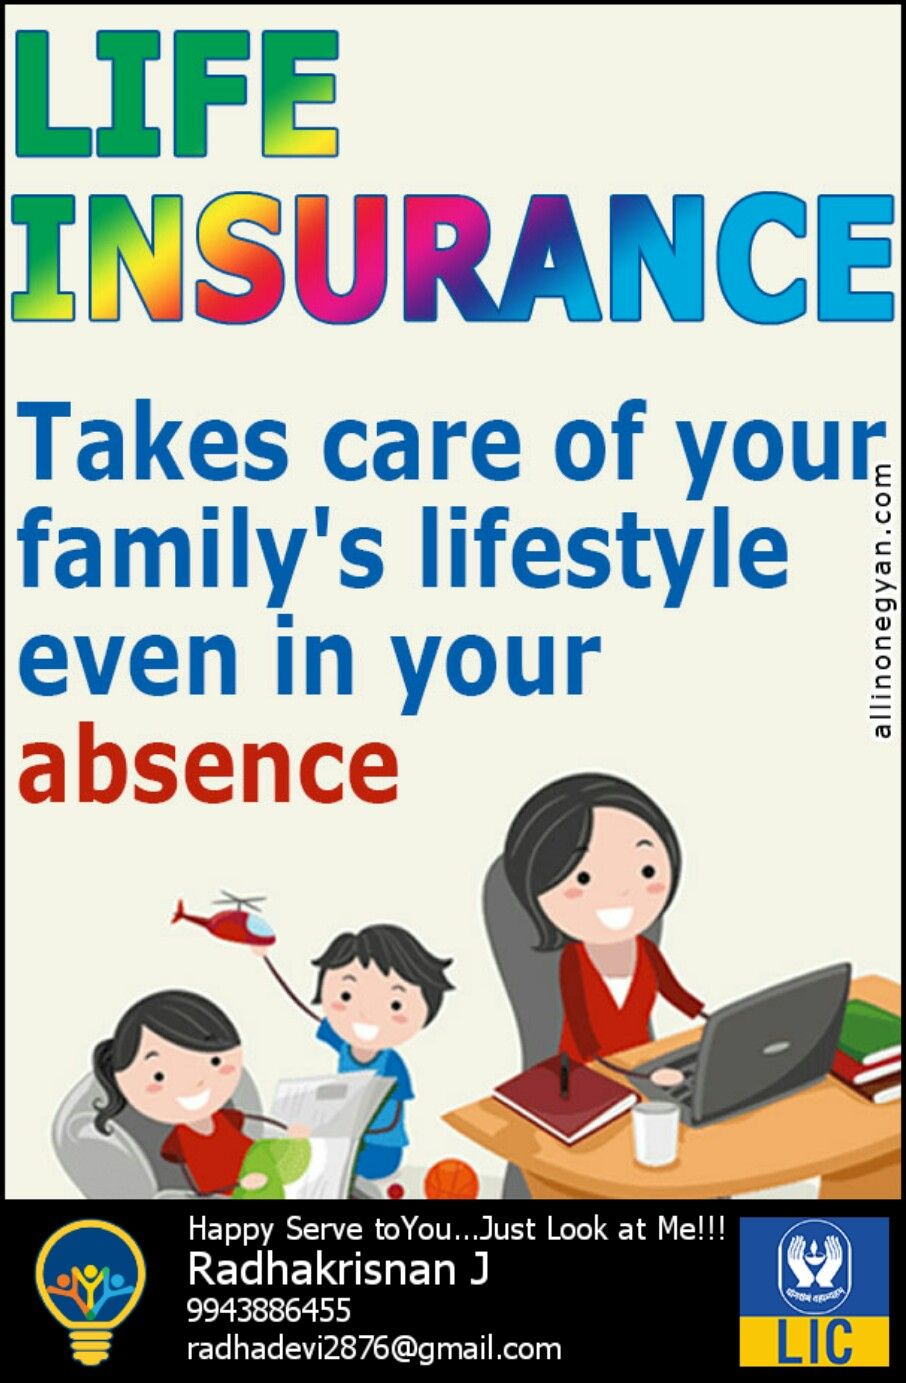 Life Insurance Life Insurance Marketing Life Insurance Quotes